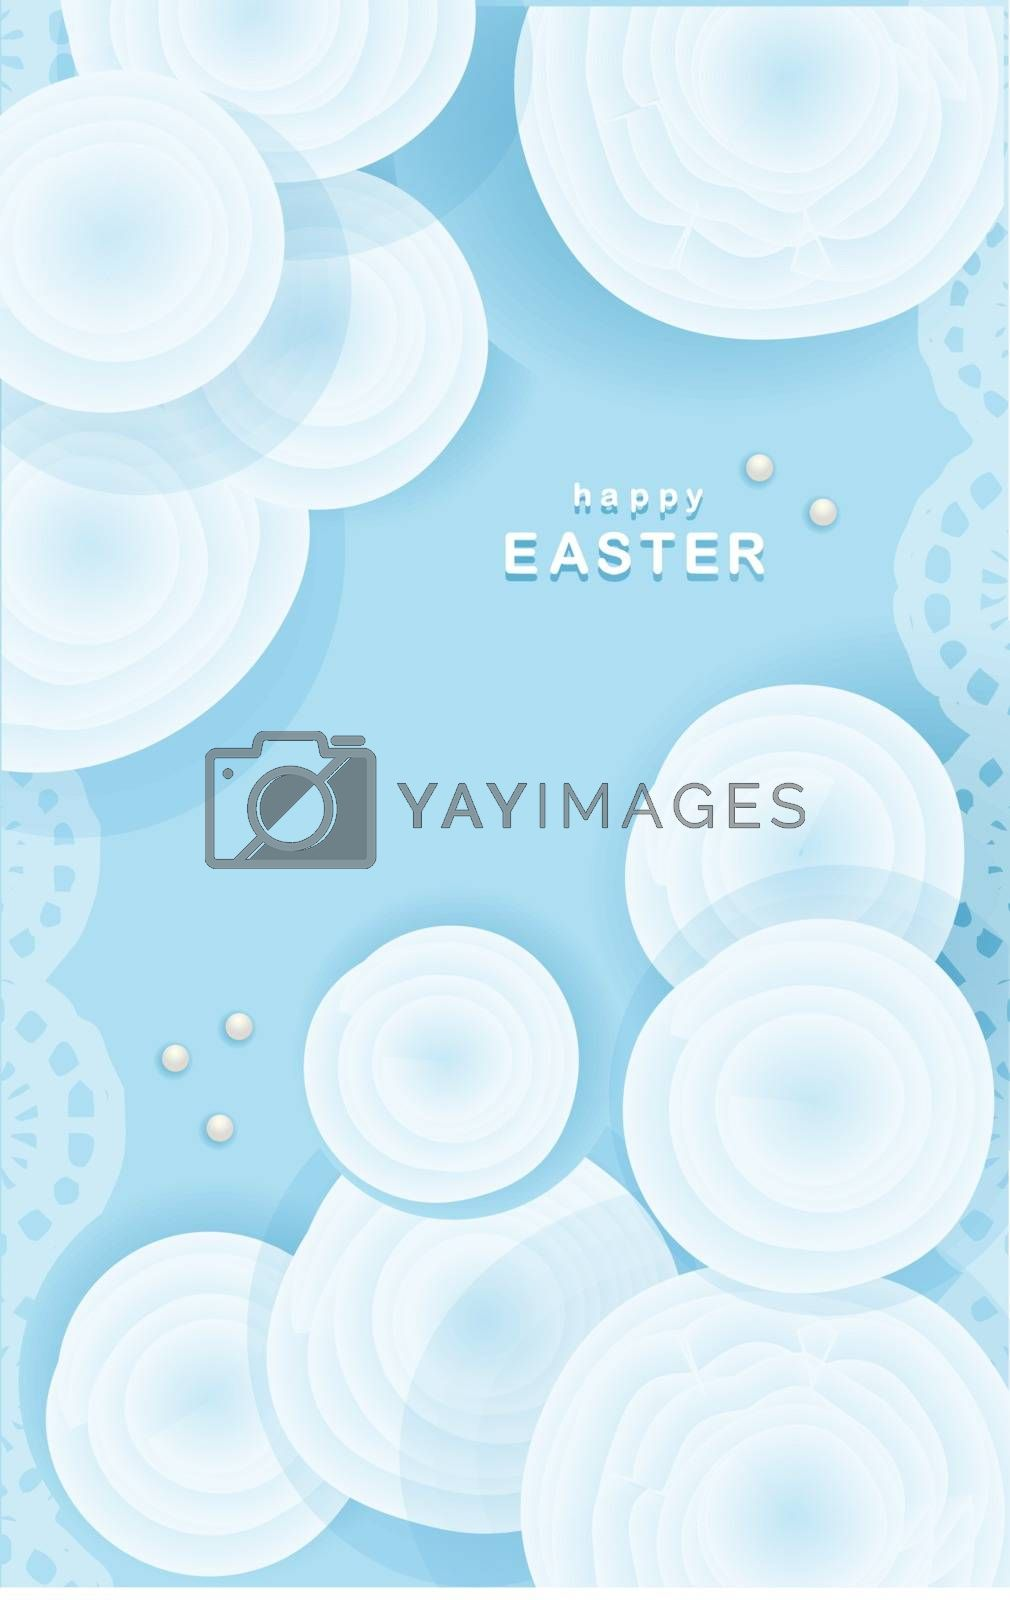 Tender easter background. Greeting card or banner. Have a good weekend. Spring holidays. Happy easter. The flowers are blue